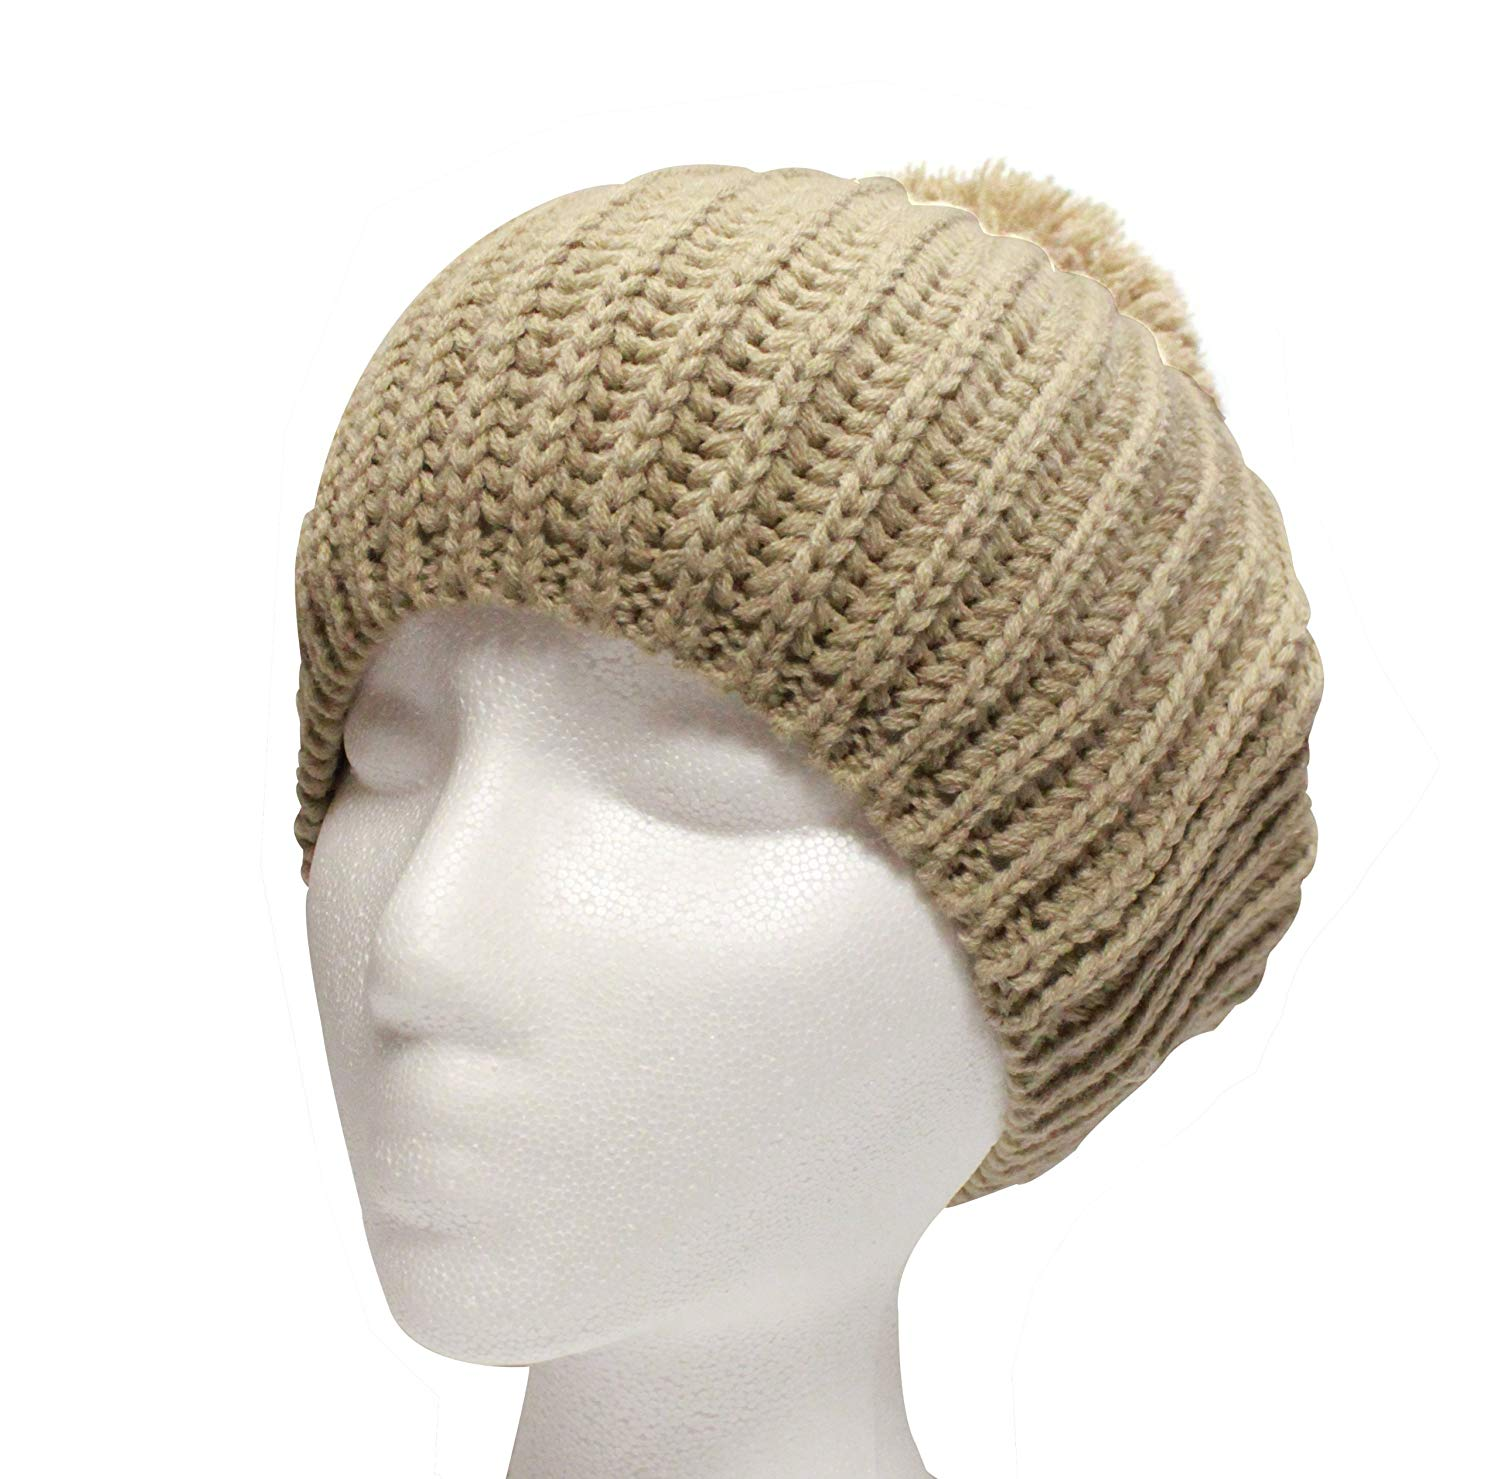 City Hunter Ck1090 Beret Solid Pom Pom Hat - Khaki